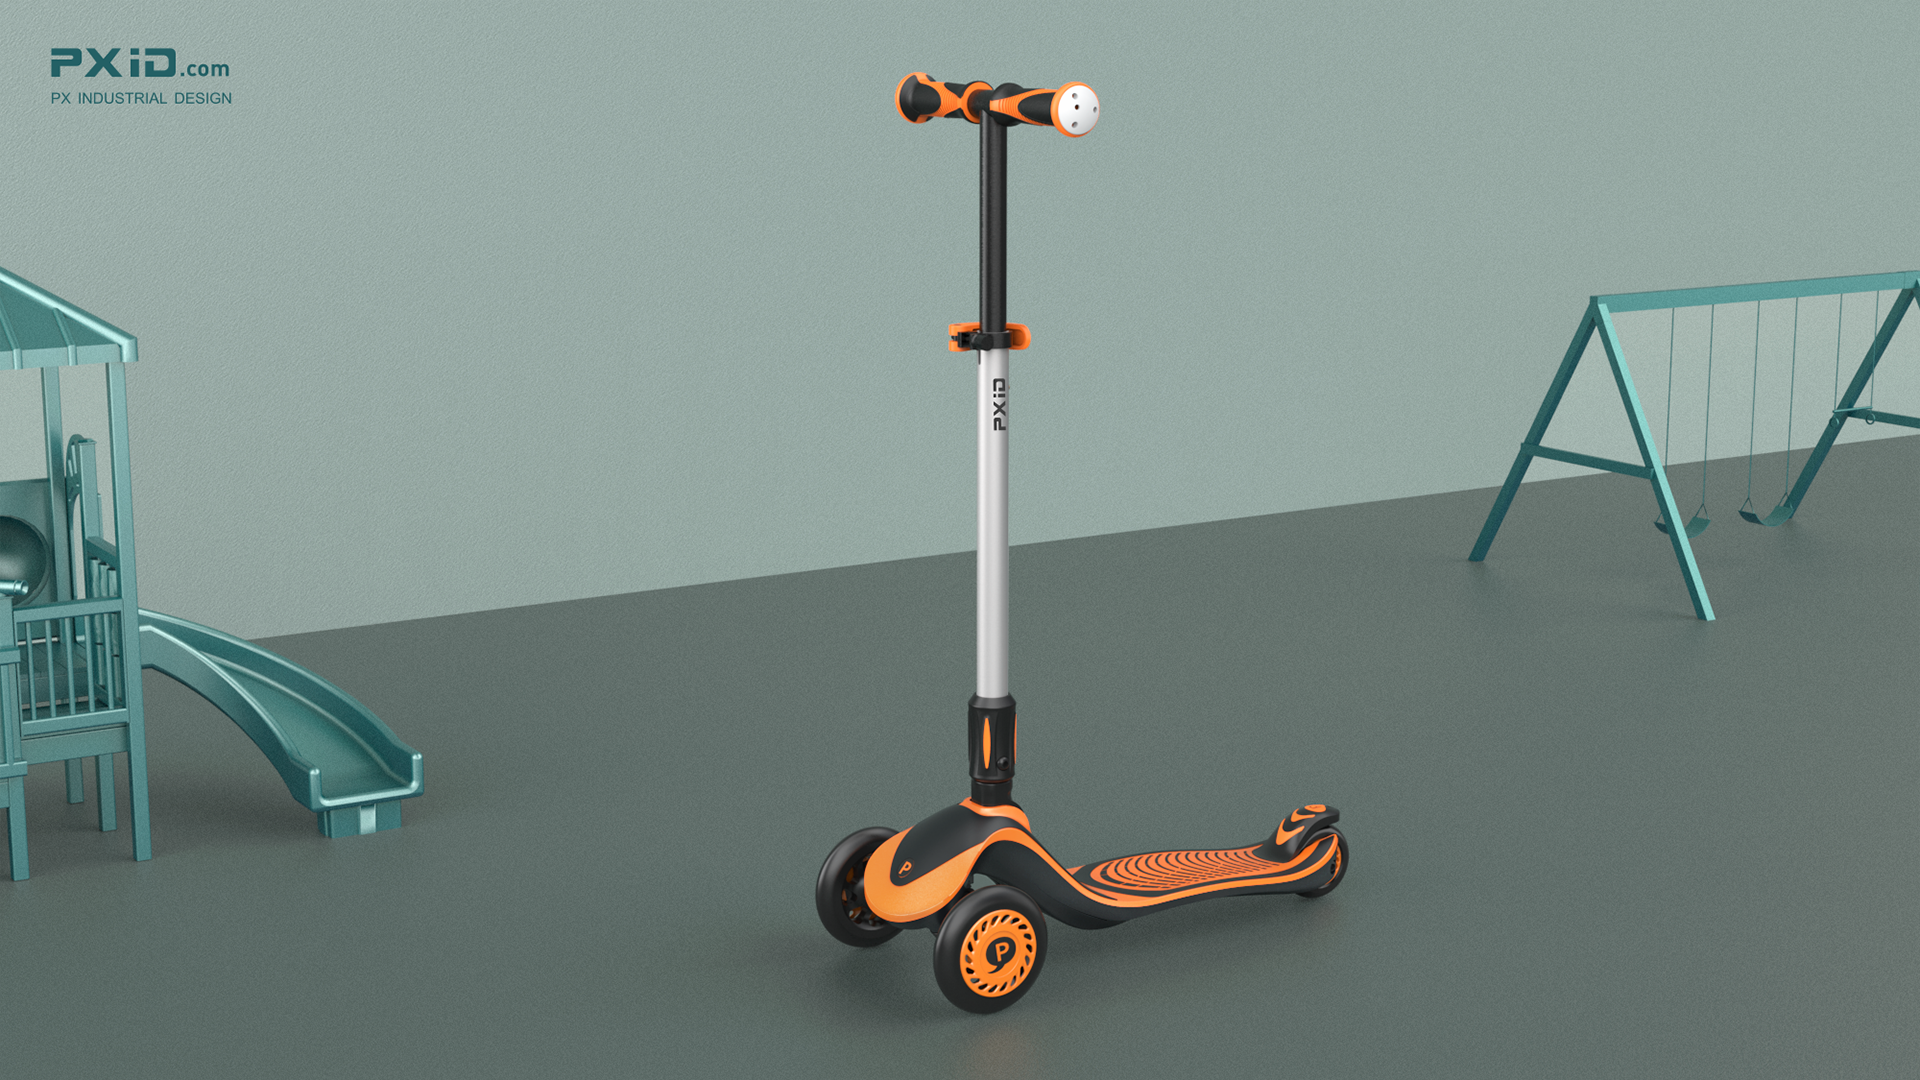 Children's rubberized scooter design